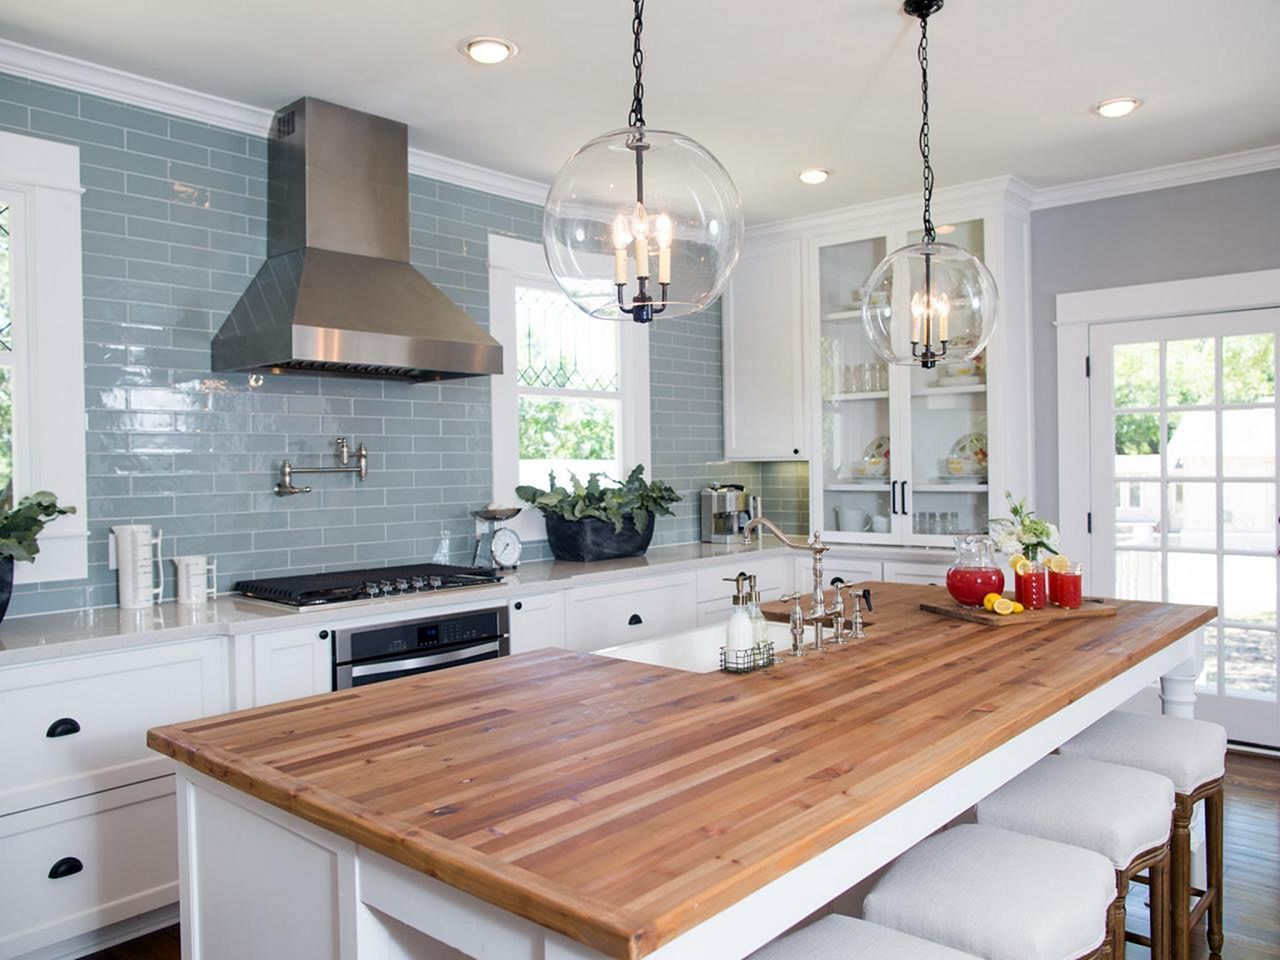 26 Captivating Butcher Block Island Ideas You Should Know